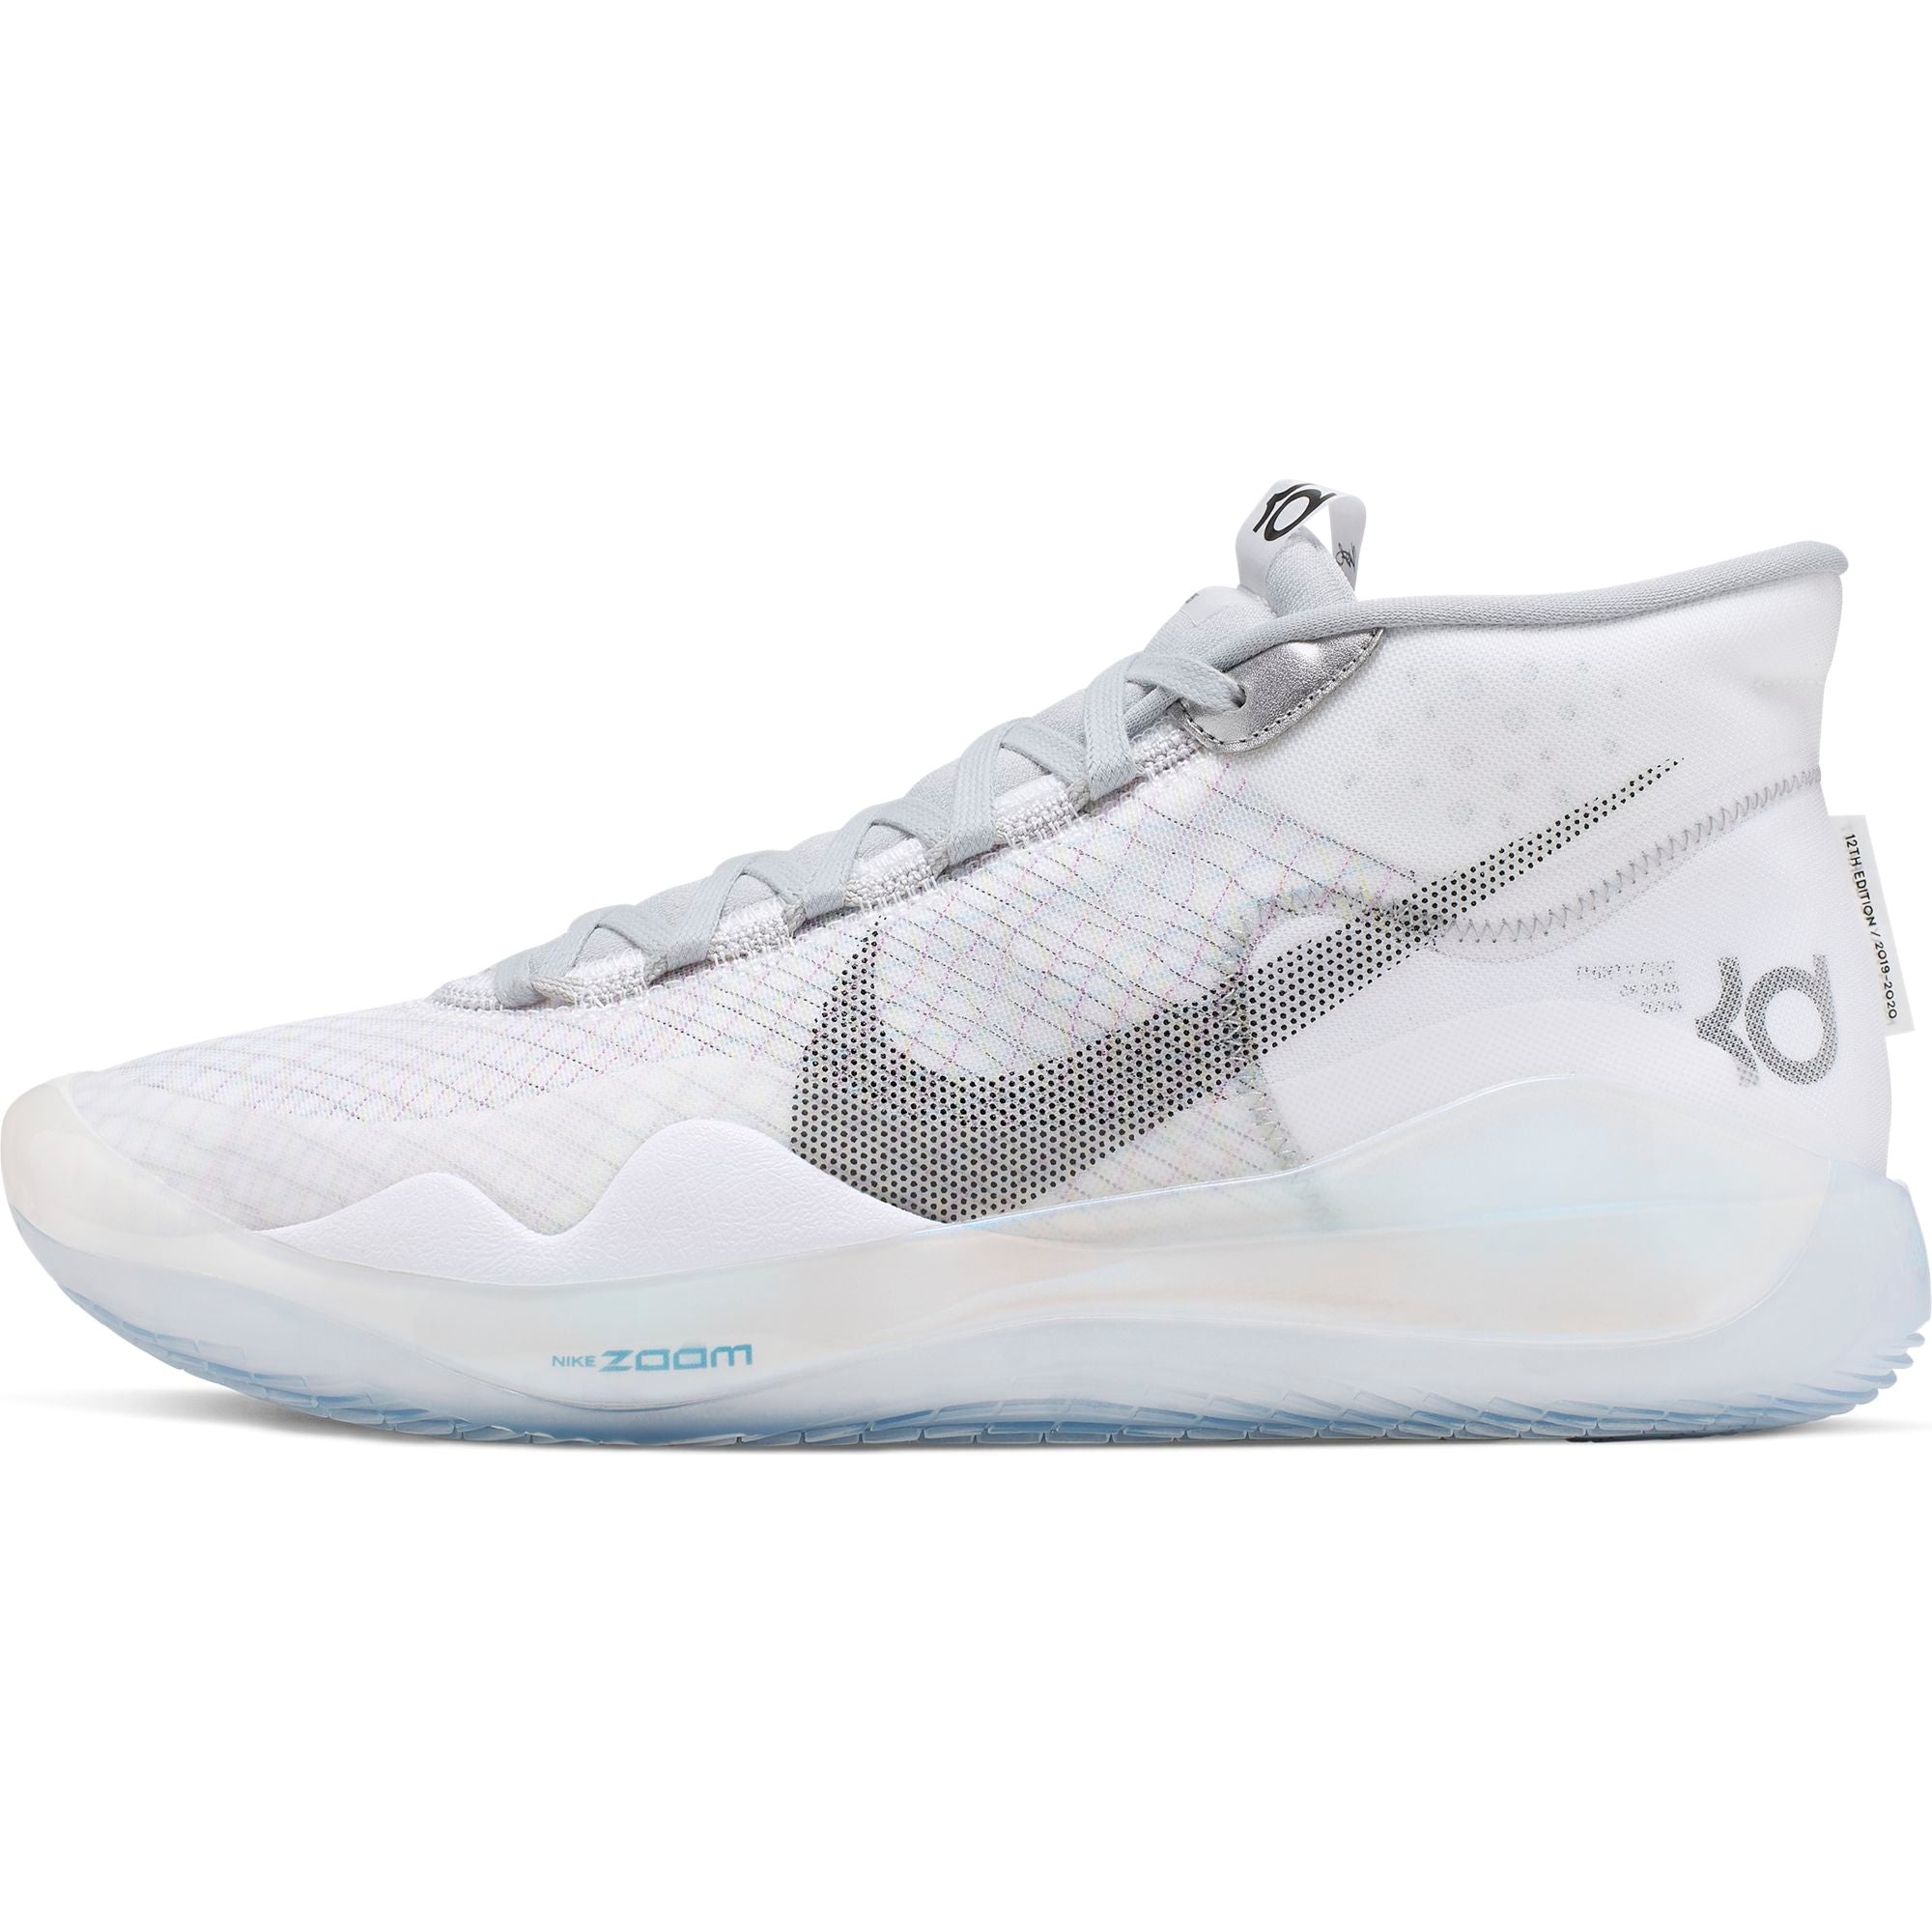 Nike KD Zoom KD12 Basketball Boot/Shoe - NK-CK1195-101